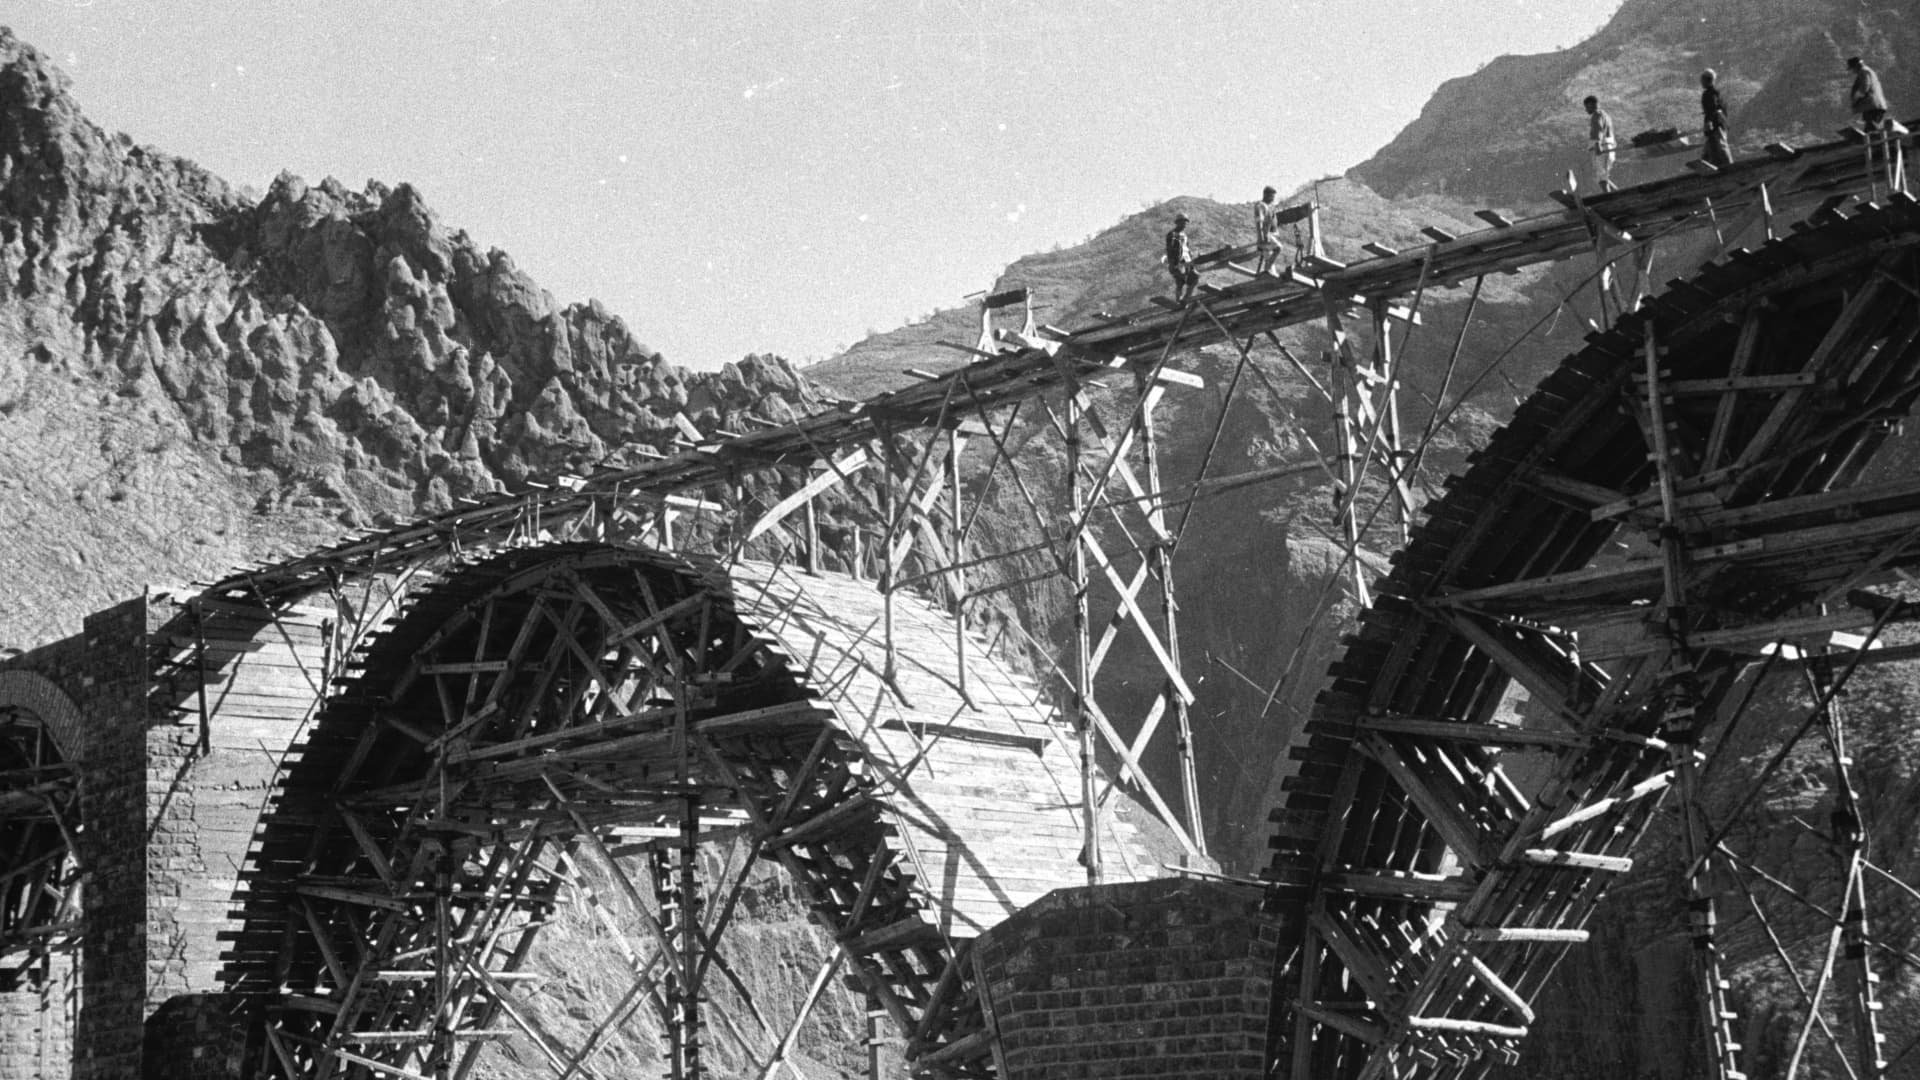 A railway bridge is constructed to form part of the Trans-Iranian Railway in 1956.